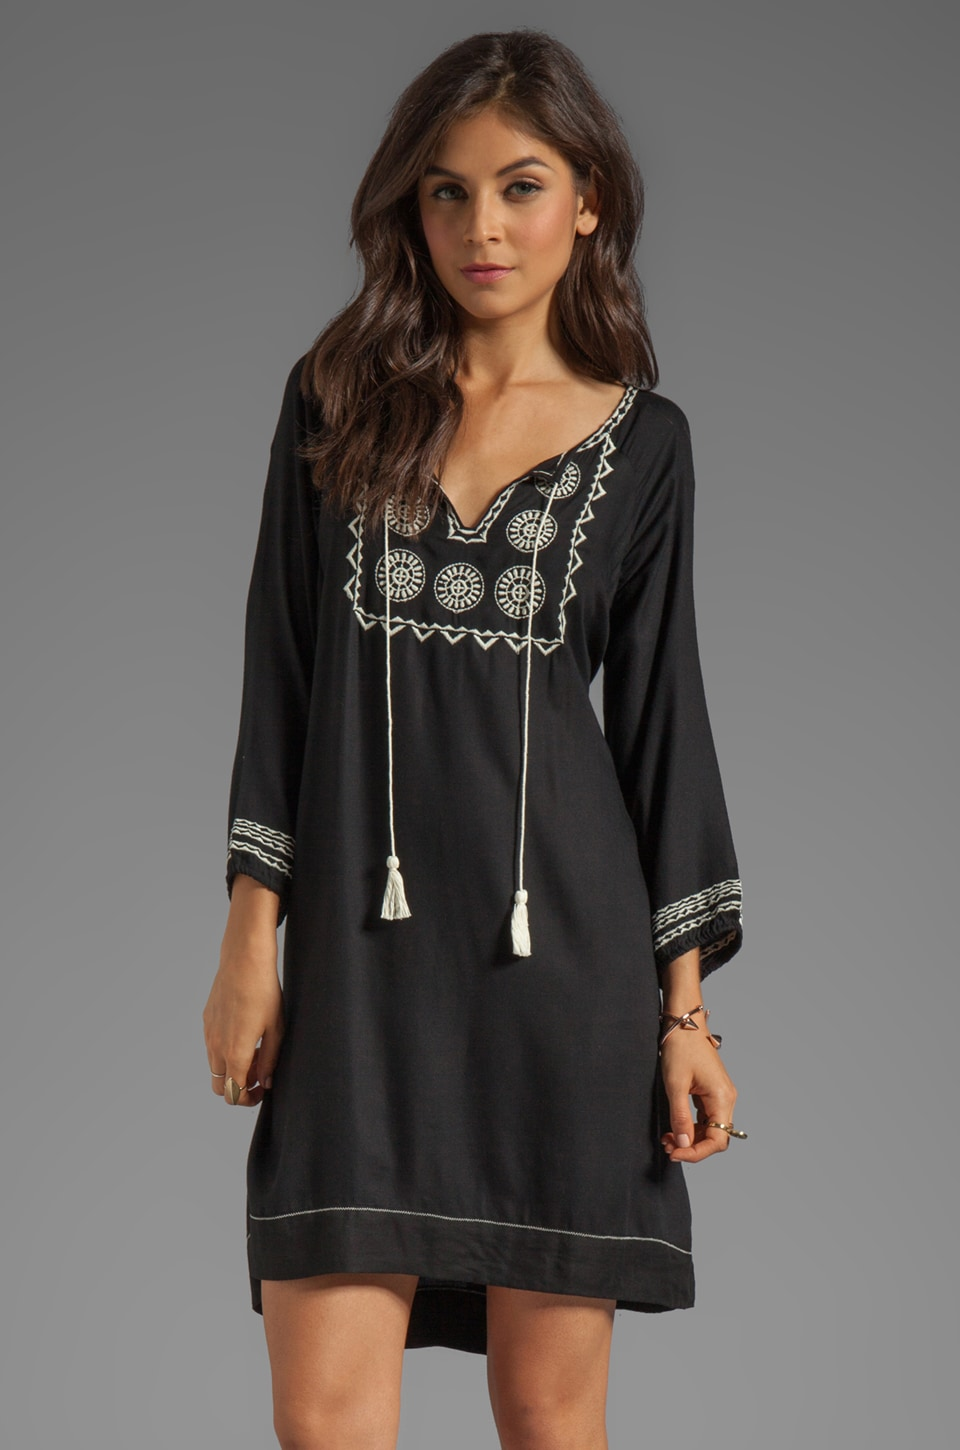 Soft Joie Chauncey Embroidered Dress in Caviar/Vanilla